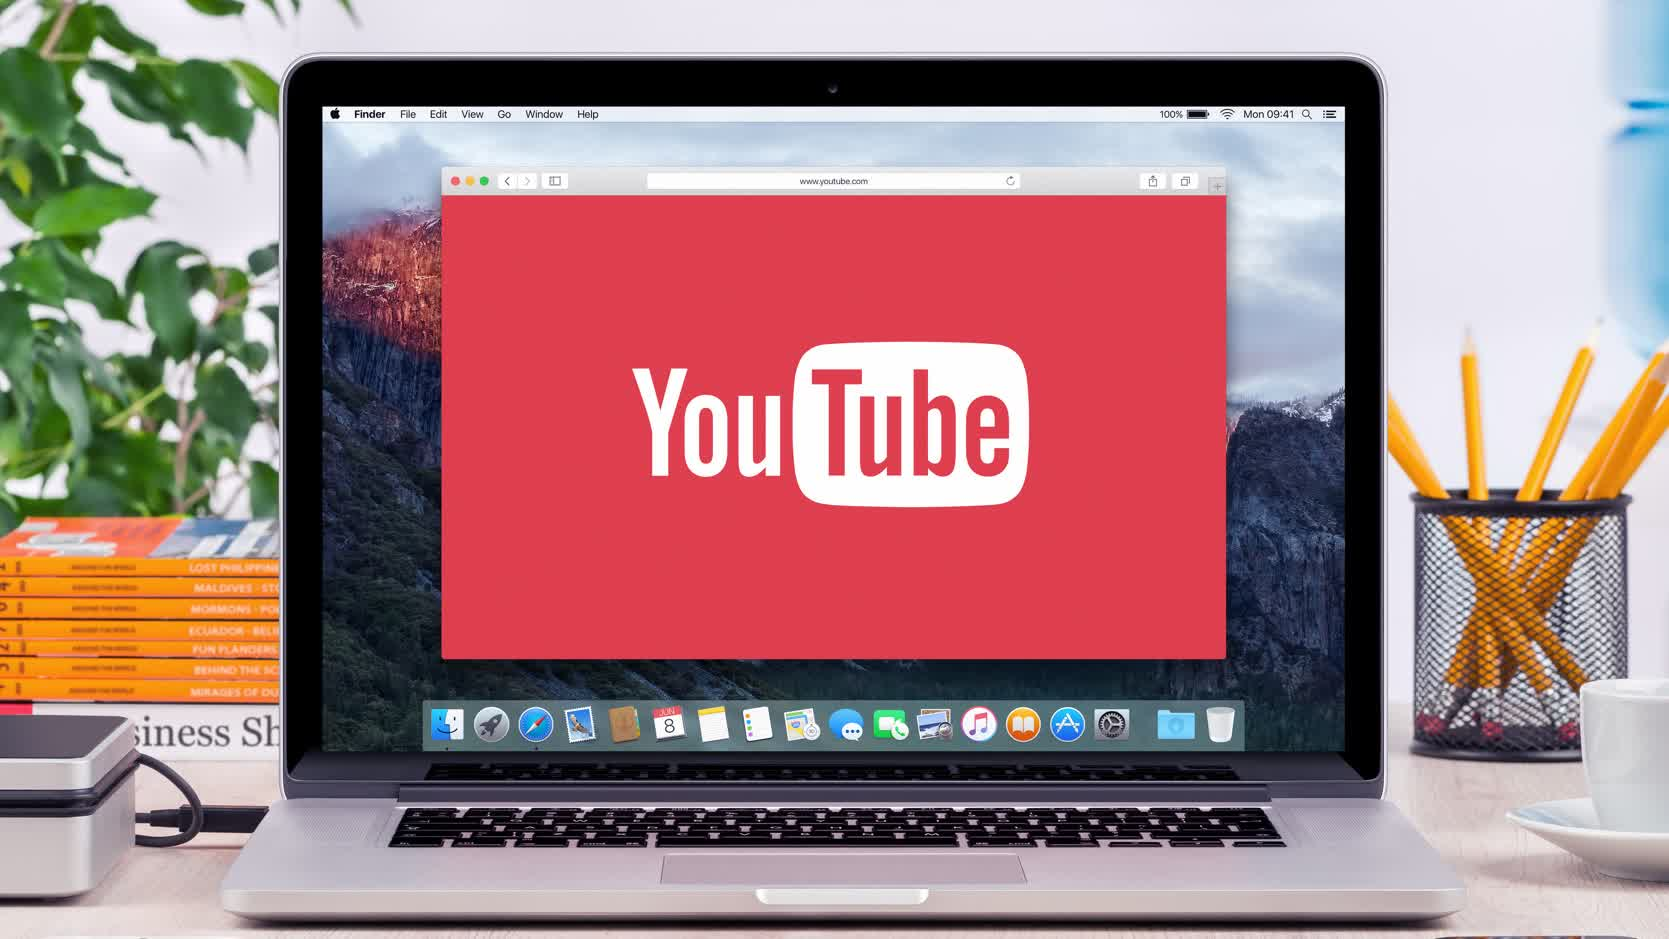 YouTube is letting Premium subscribers experiment with downloading videos on desktop